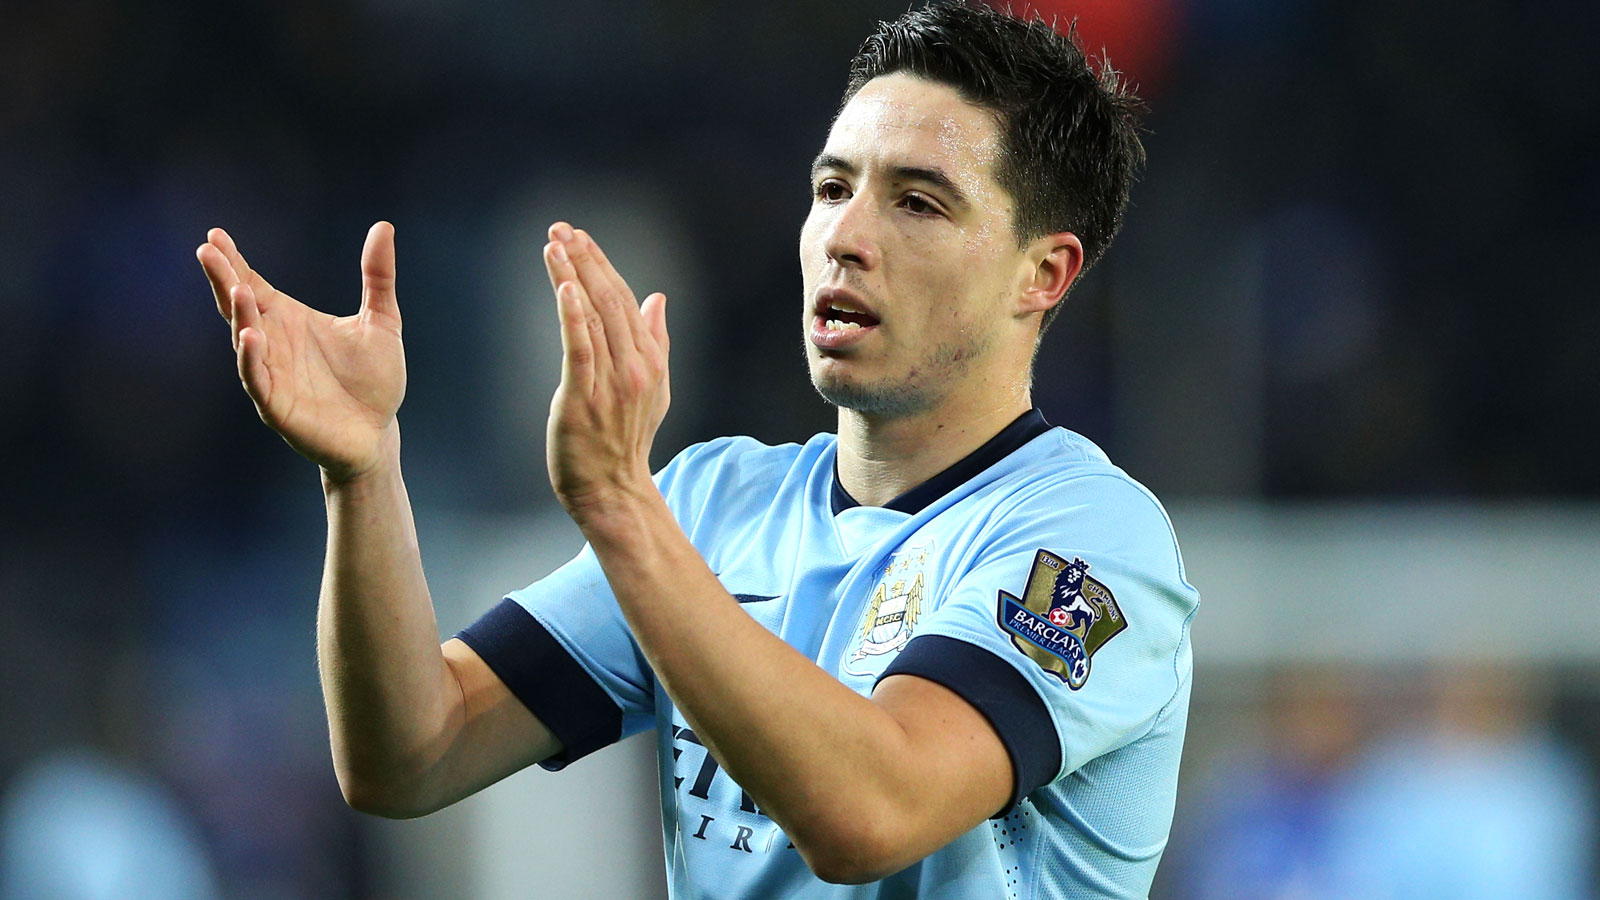 Nasri wants Manchester City stay but urges club to splash cash